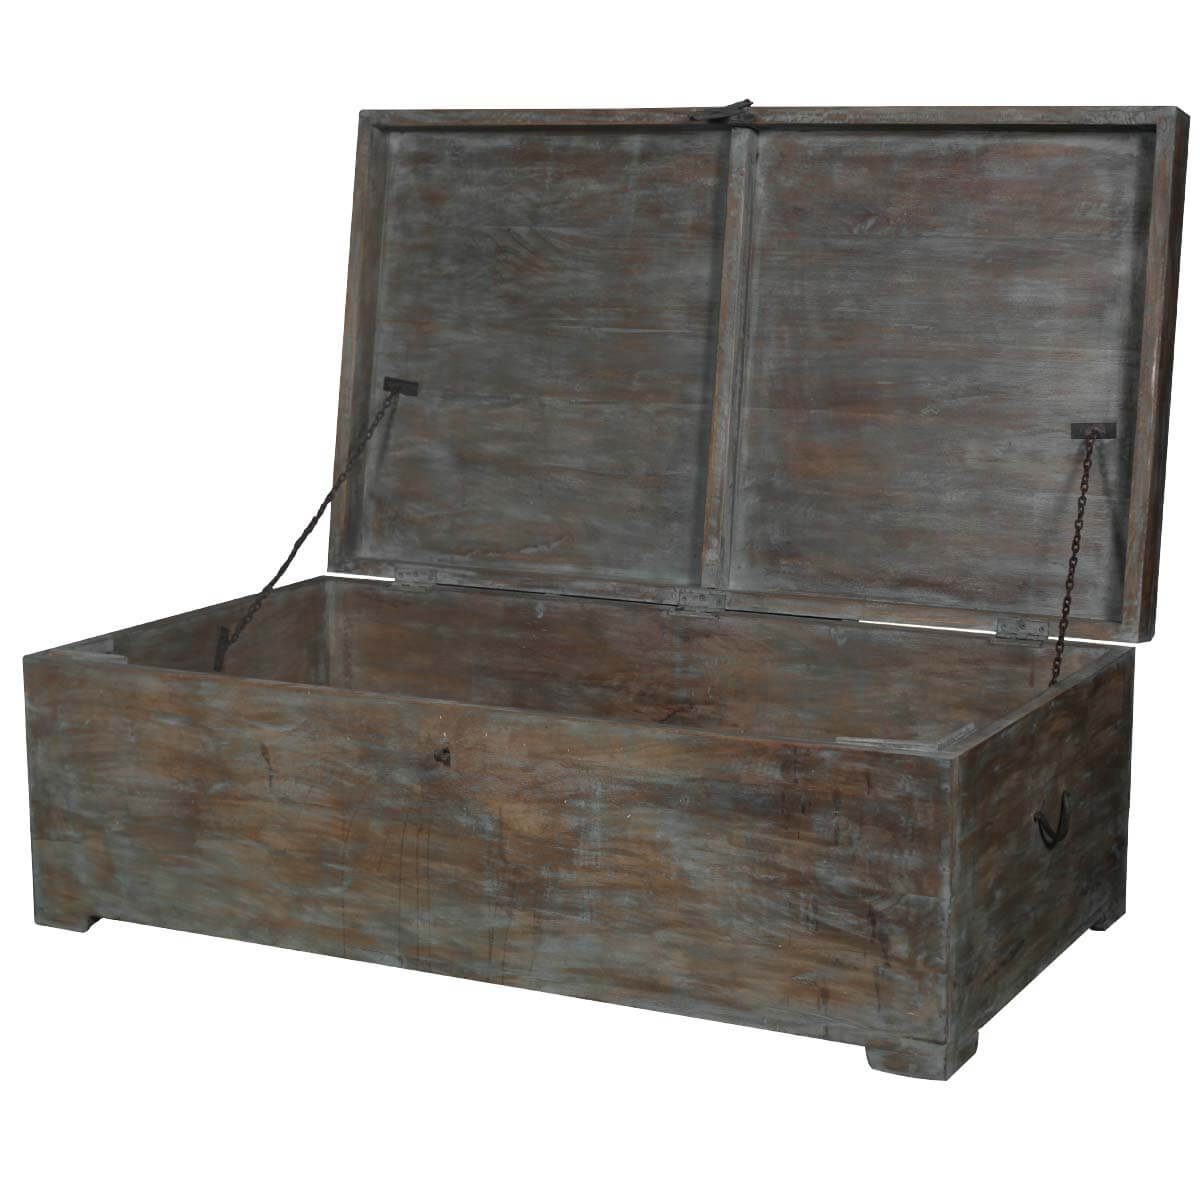 Rustic mango wood distressed coffee table storage chest Coffee table chest with storage